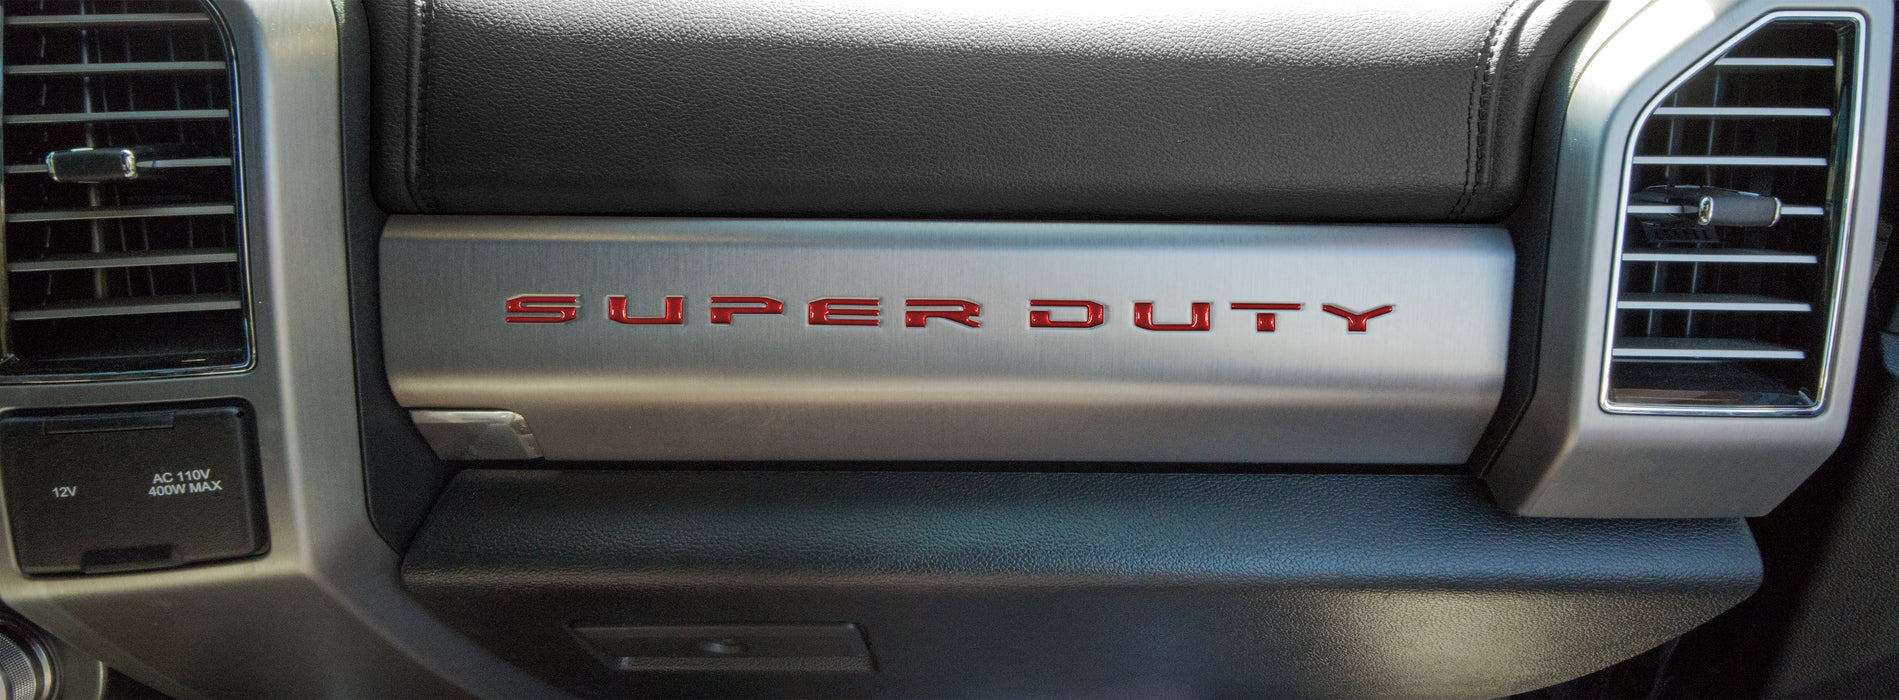 """SUPER DUTY"" Glove Box Letter Inserts Fits 2017-2021 Ford Super Duty"